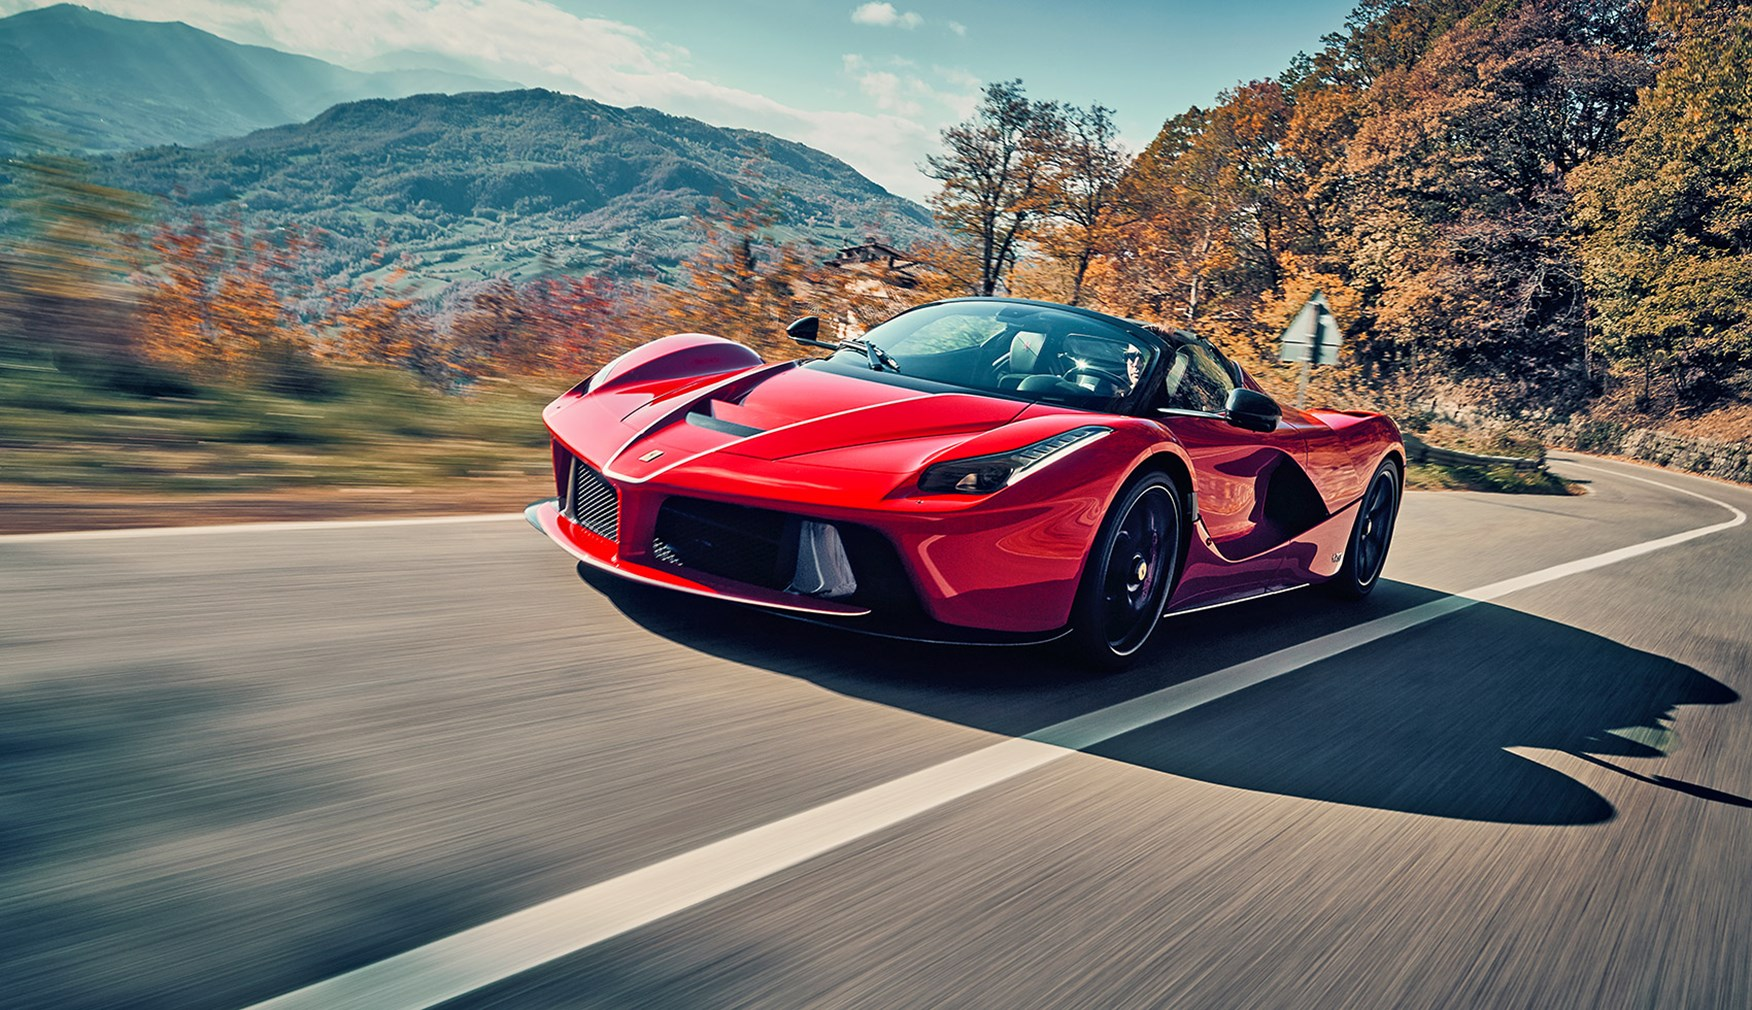 Laferrari Aperta 2018 Review Car Magazine